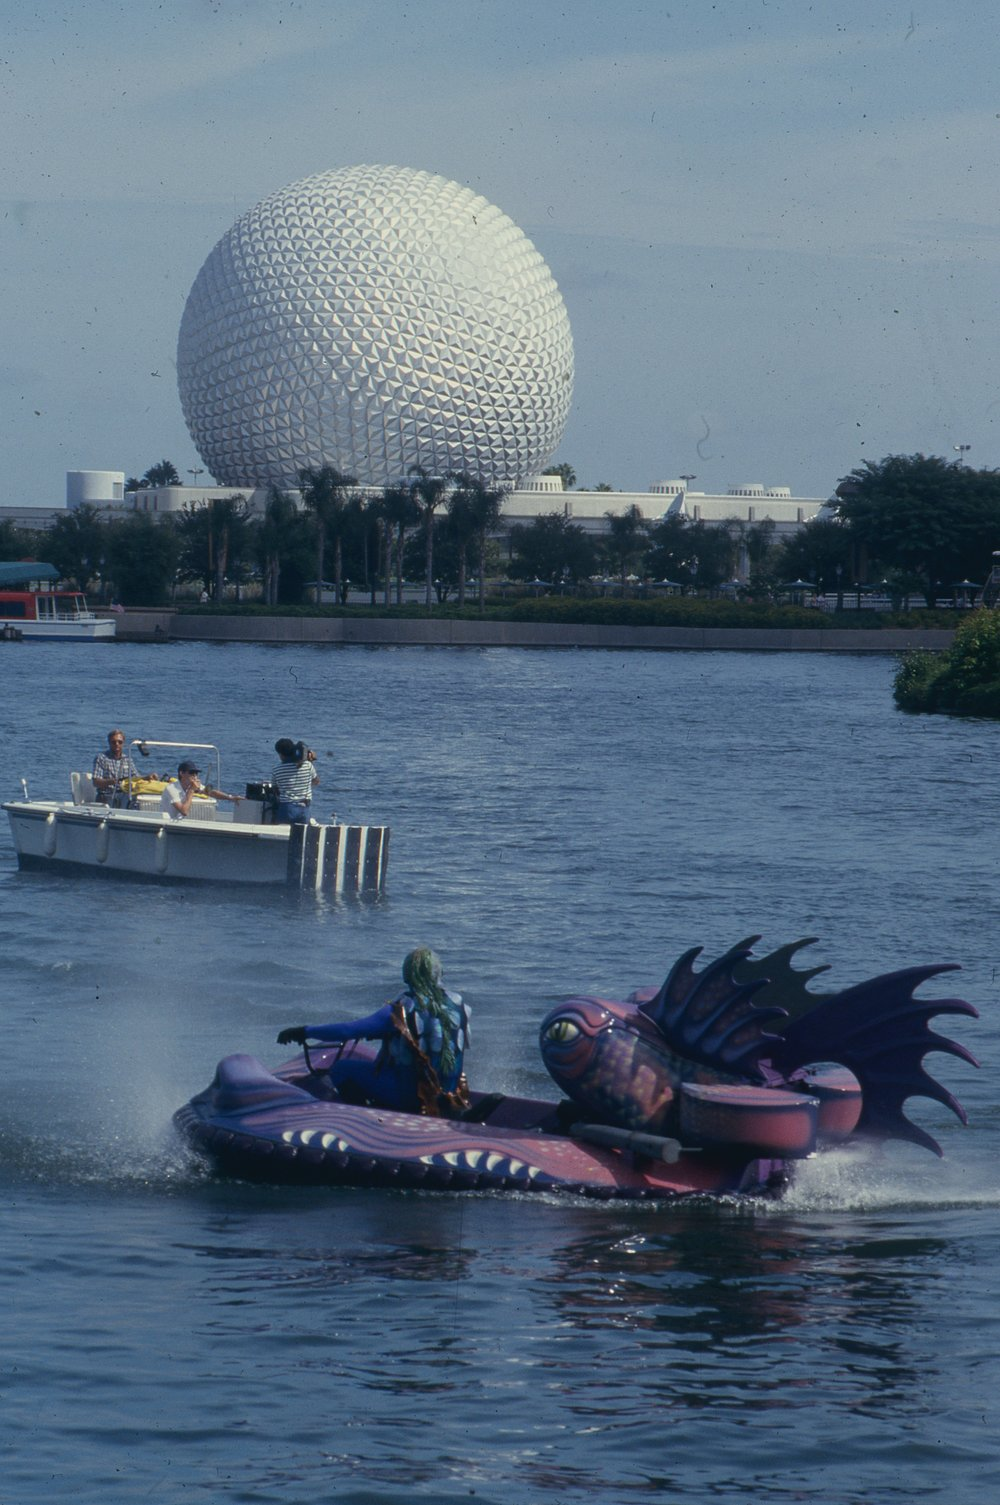 1985 Hovercraft Dragon's Operating at Disney's Epcot Center, Orlando, Florida, USA